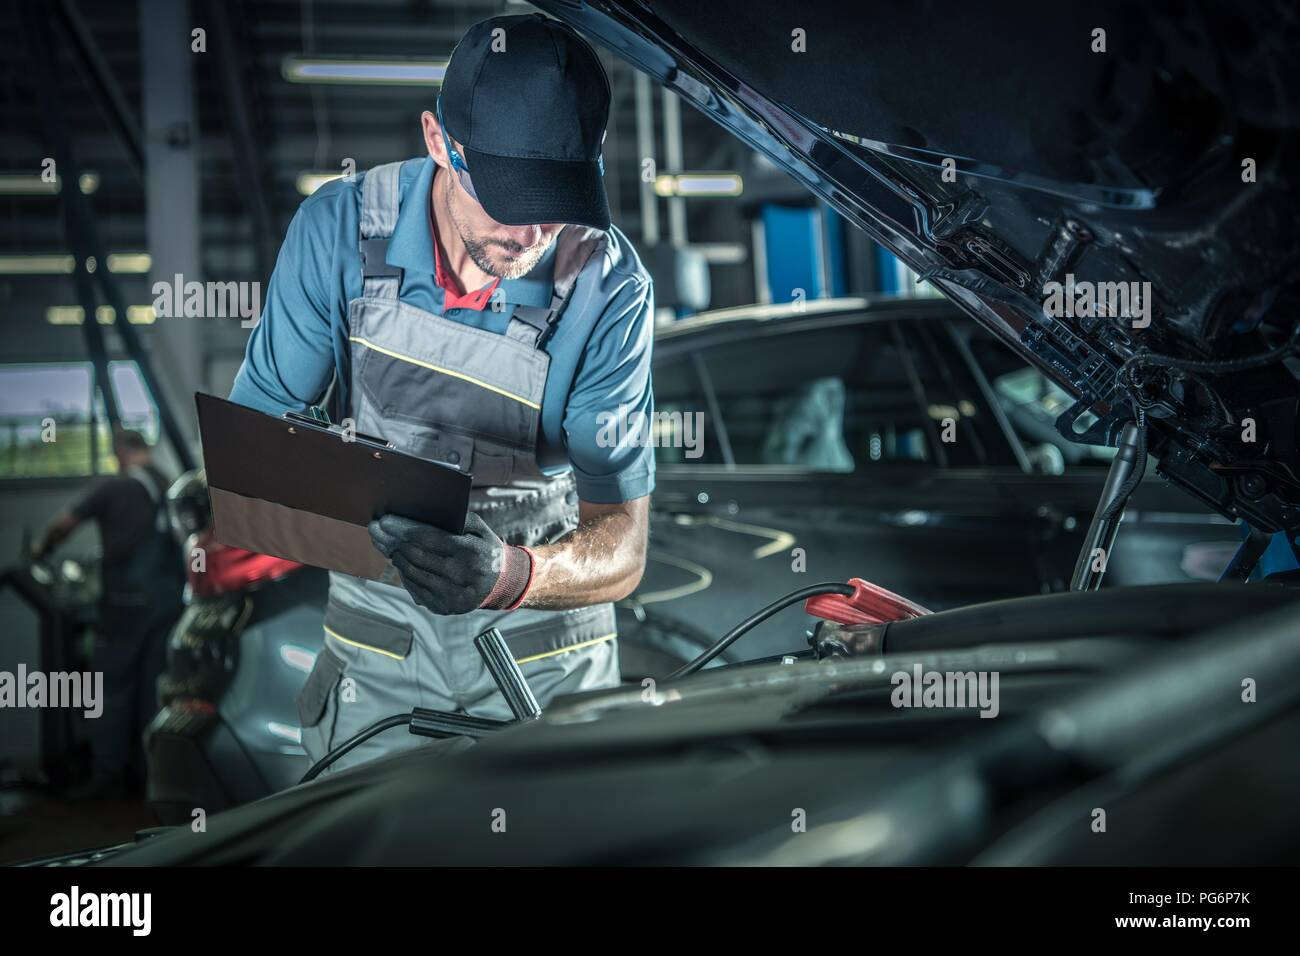 Car Mechanic Detailed Vehicle Inspection. Auto Service Center Theme. - Stock Image